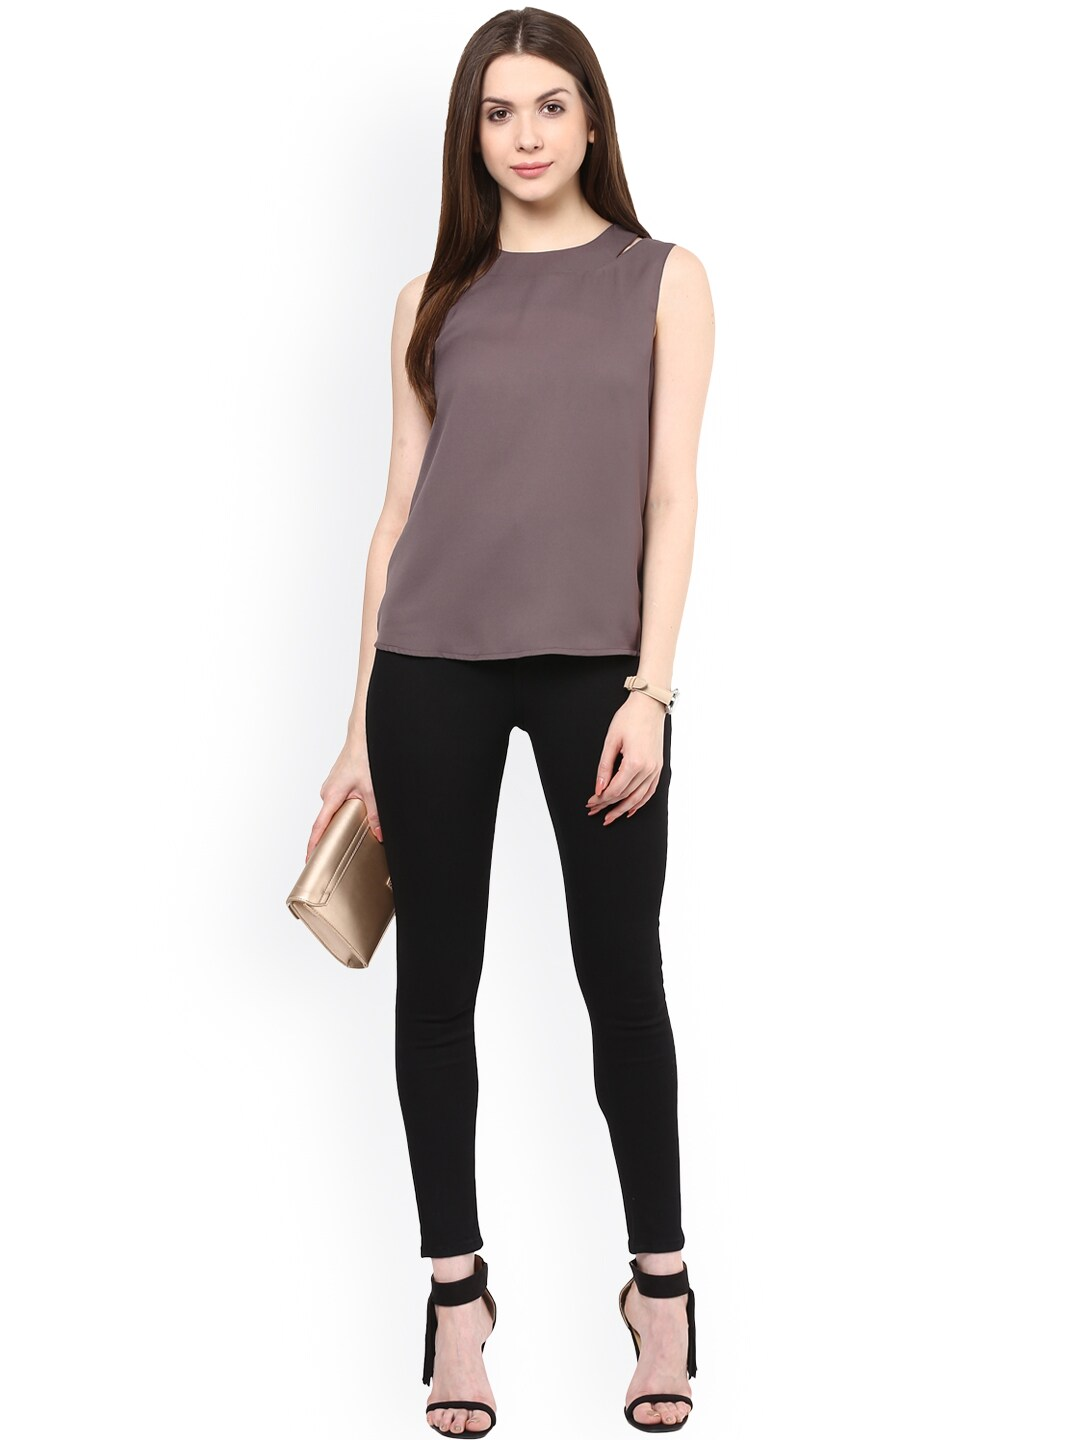 Find long tops to wear with leggings at ShopStyle. Shop the latest collection of long tops to wear with leggings from the most popular stores - all in. Teen Girls' Clothes 2 Tops 83 Size Choose a category first to see available options Price & Deals $ to Set. On Sale.